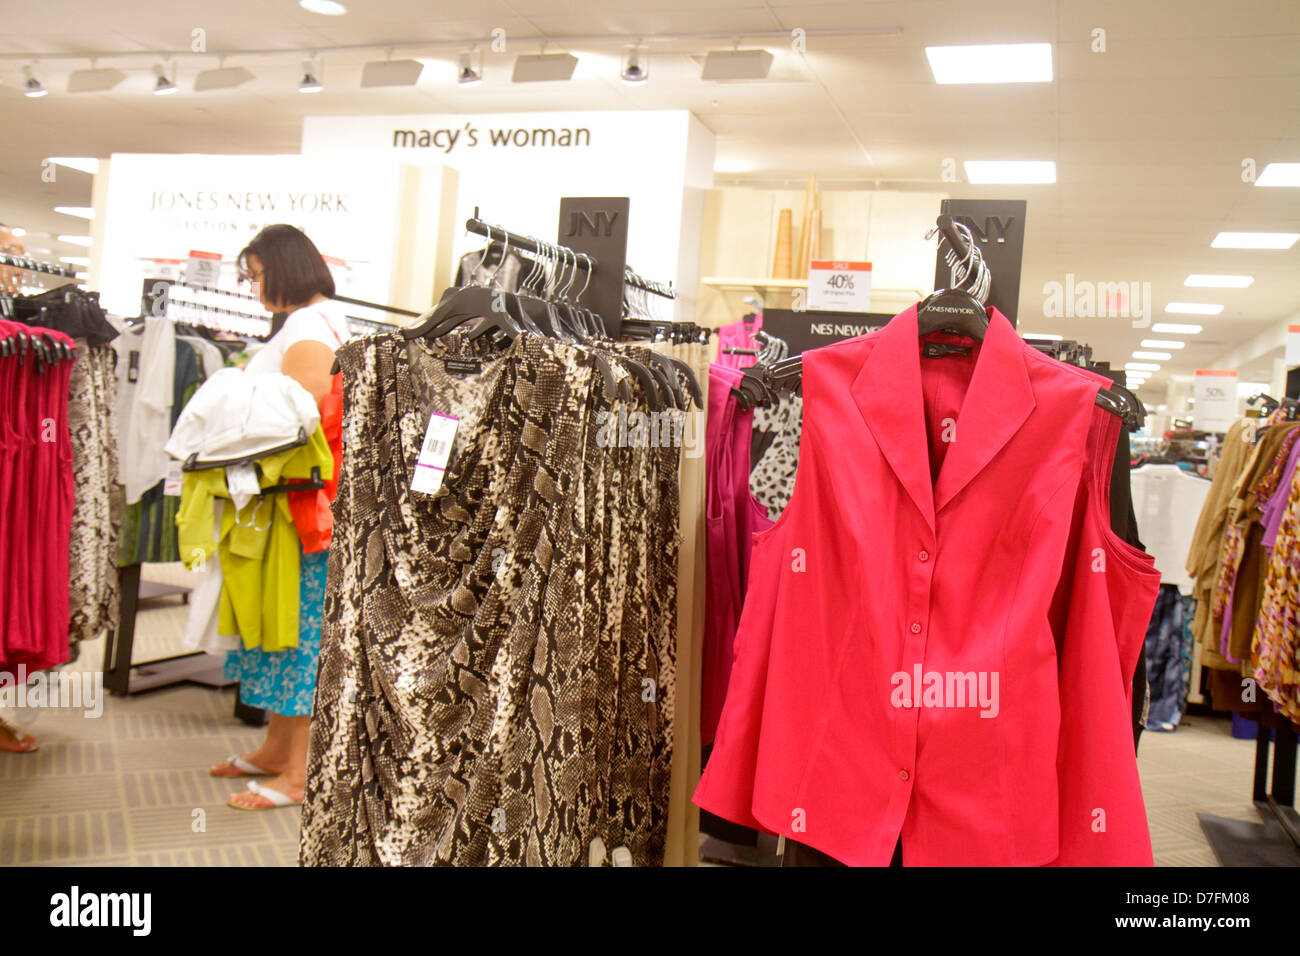 department store display racks,clothing store display,decoration clothes storesCSF-081